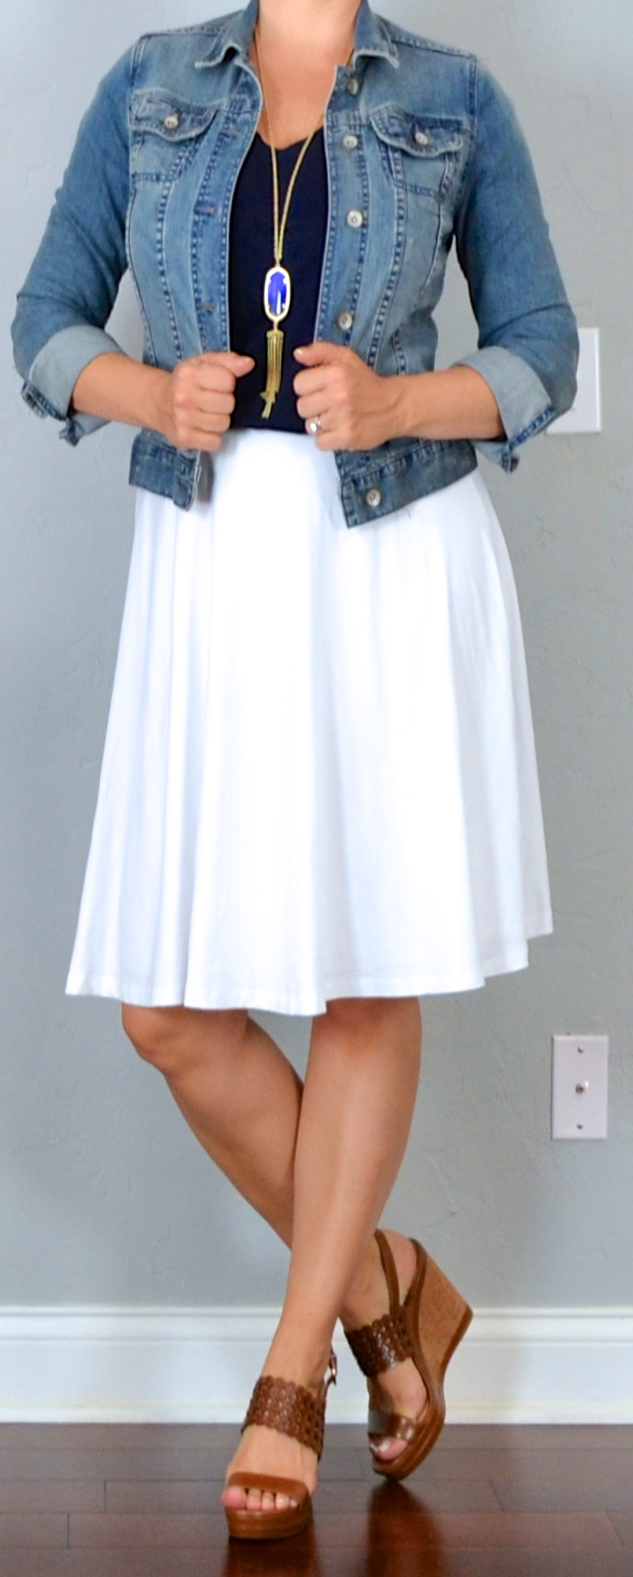 Outfit post white midi skirt navy shirt jean jacket brown perforated wedges